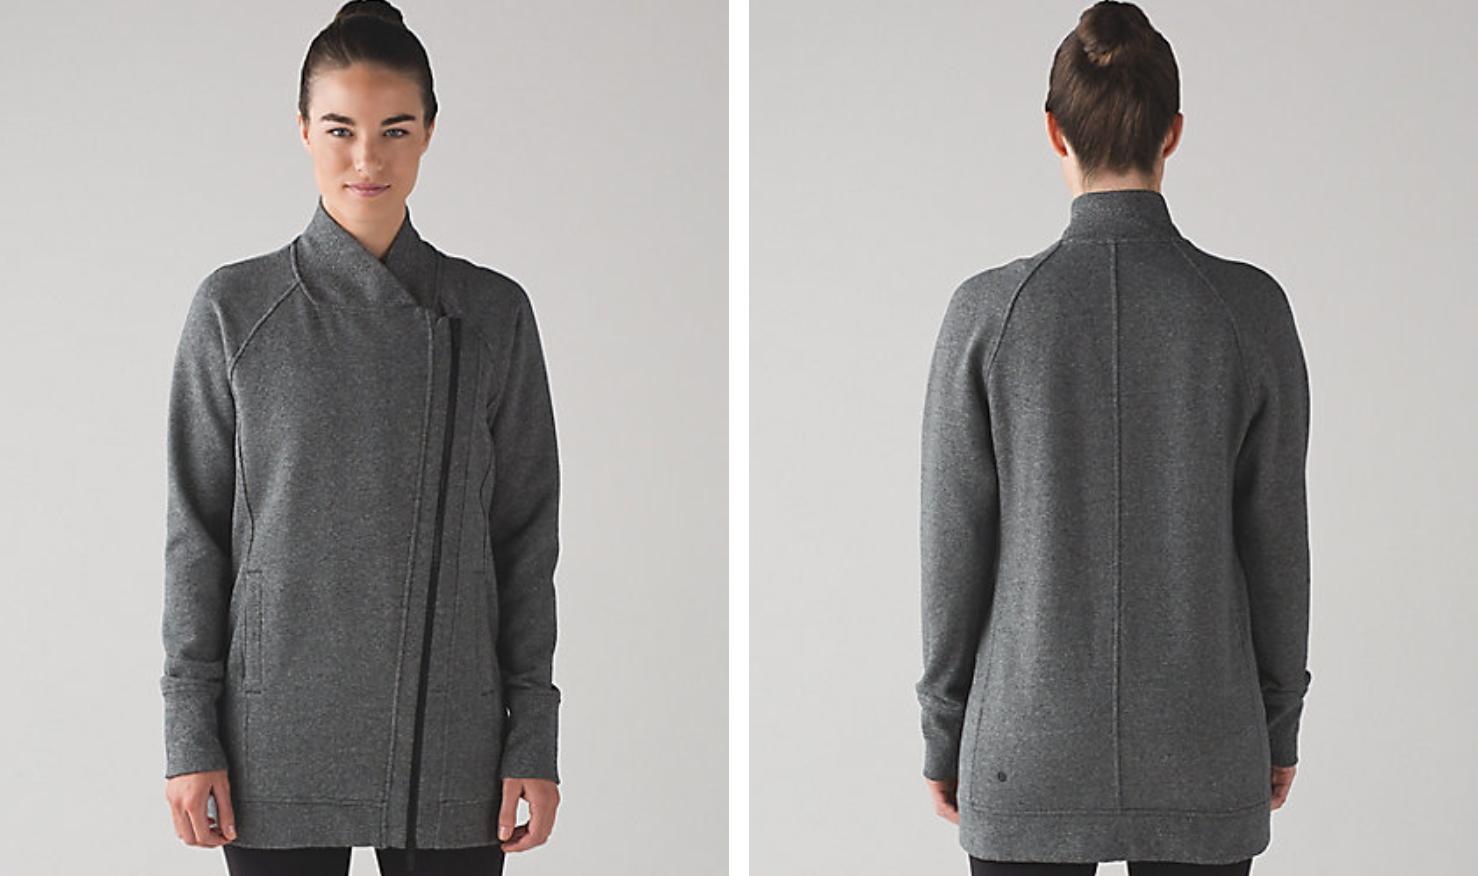 https://api.shopstyle.com/action/apiVisitRetailer?url=https%3A%2F%2Fshop.lululemon.com%2Fp%2Ftops-long-sleeve%2FBack-To-It-Wrap%2F_%2Fprod8351408%3Frcnt%3D5%26N%3D1z13ziiZ7z5%26cnt%3D46%26color%3DLW4ABTS_8353&site=www.shopstyle.ca&pid=uid6784-25288972-7